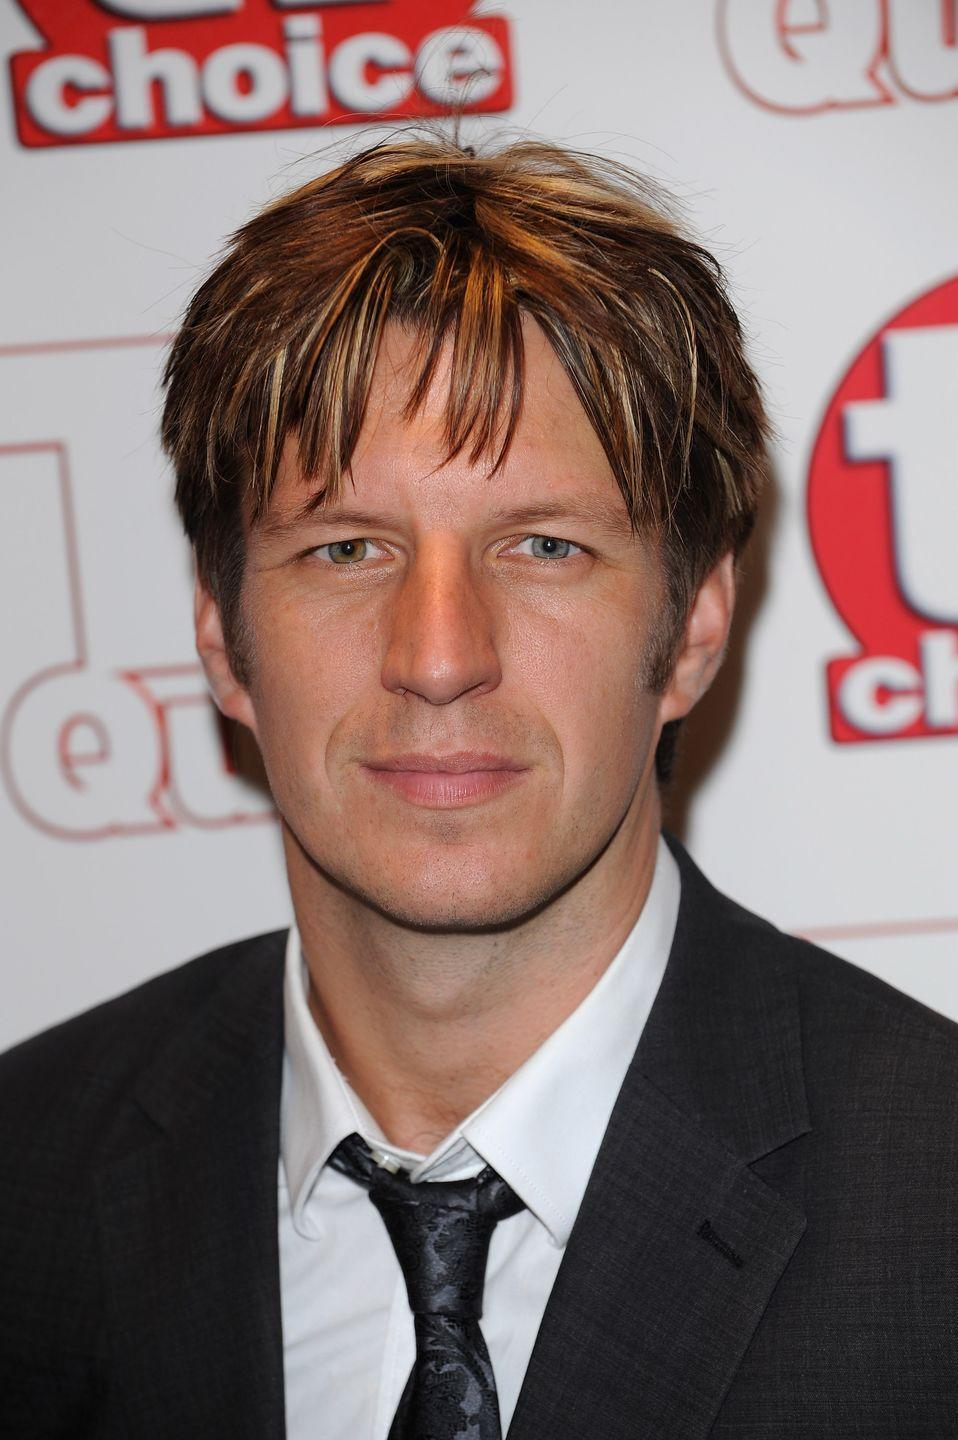 <p>Best known for his roles on British television series, Lancaster has one blue eye and one hazel with gold flecks.</p>